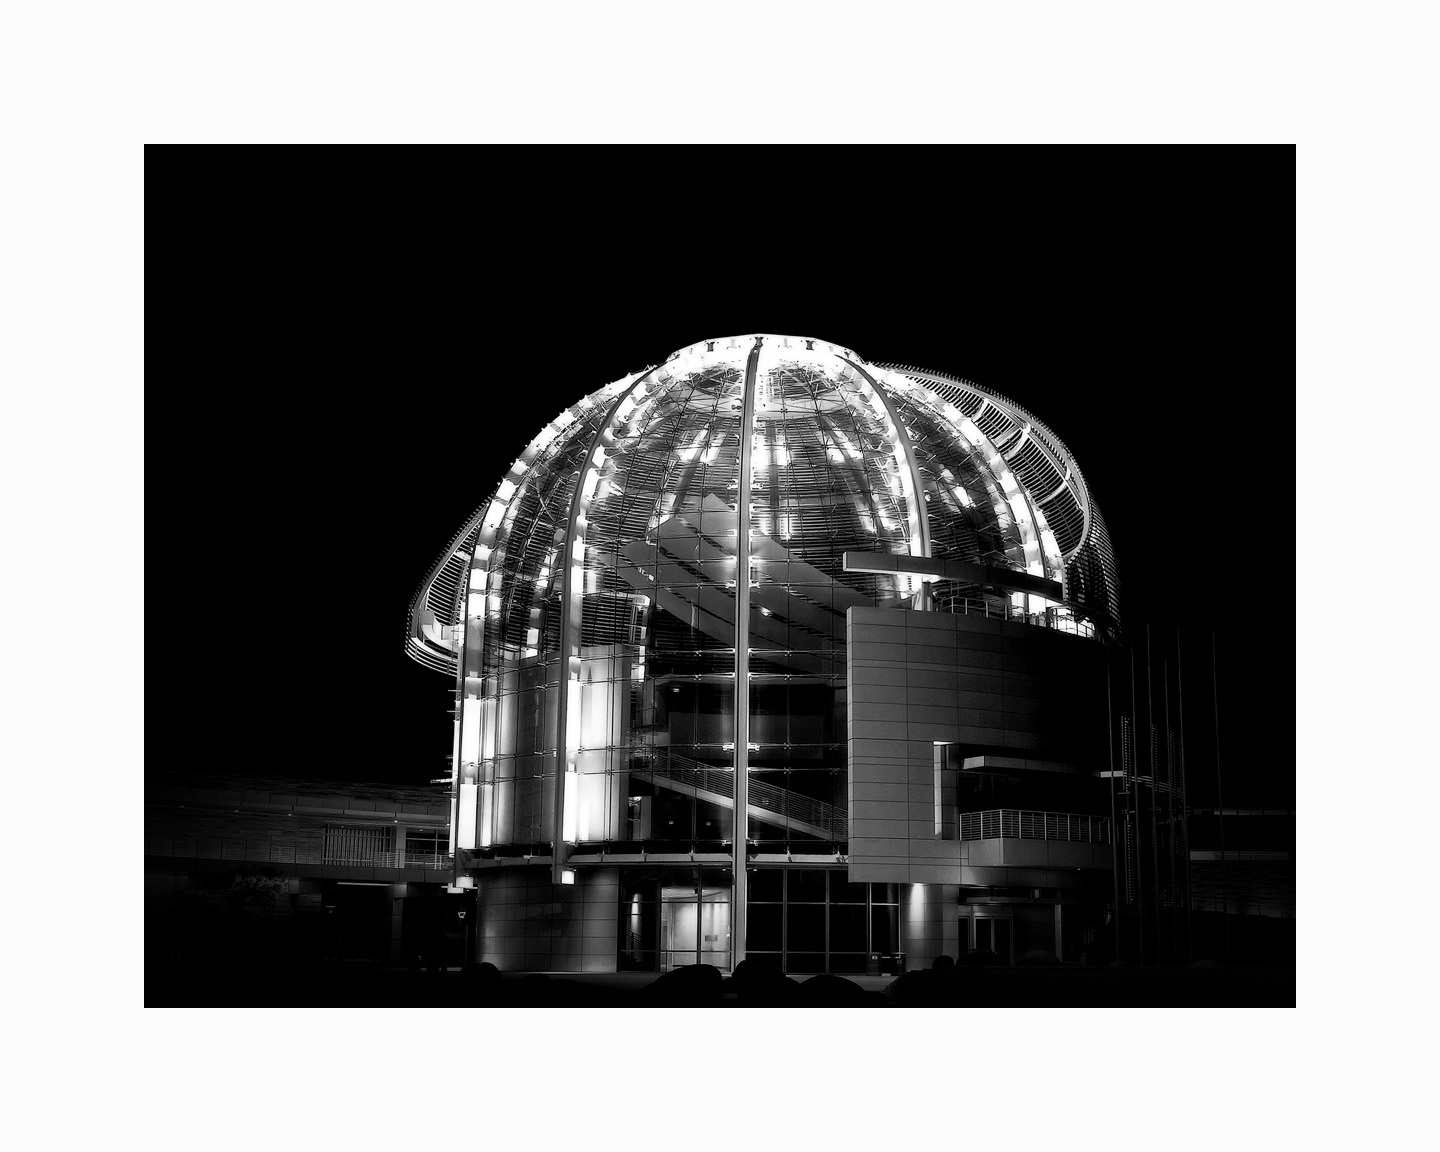 1city_hall___night_2_b_w_16x20jpg